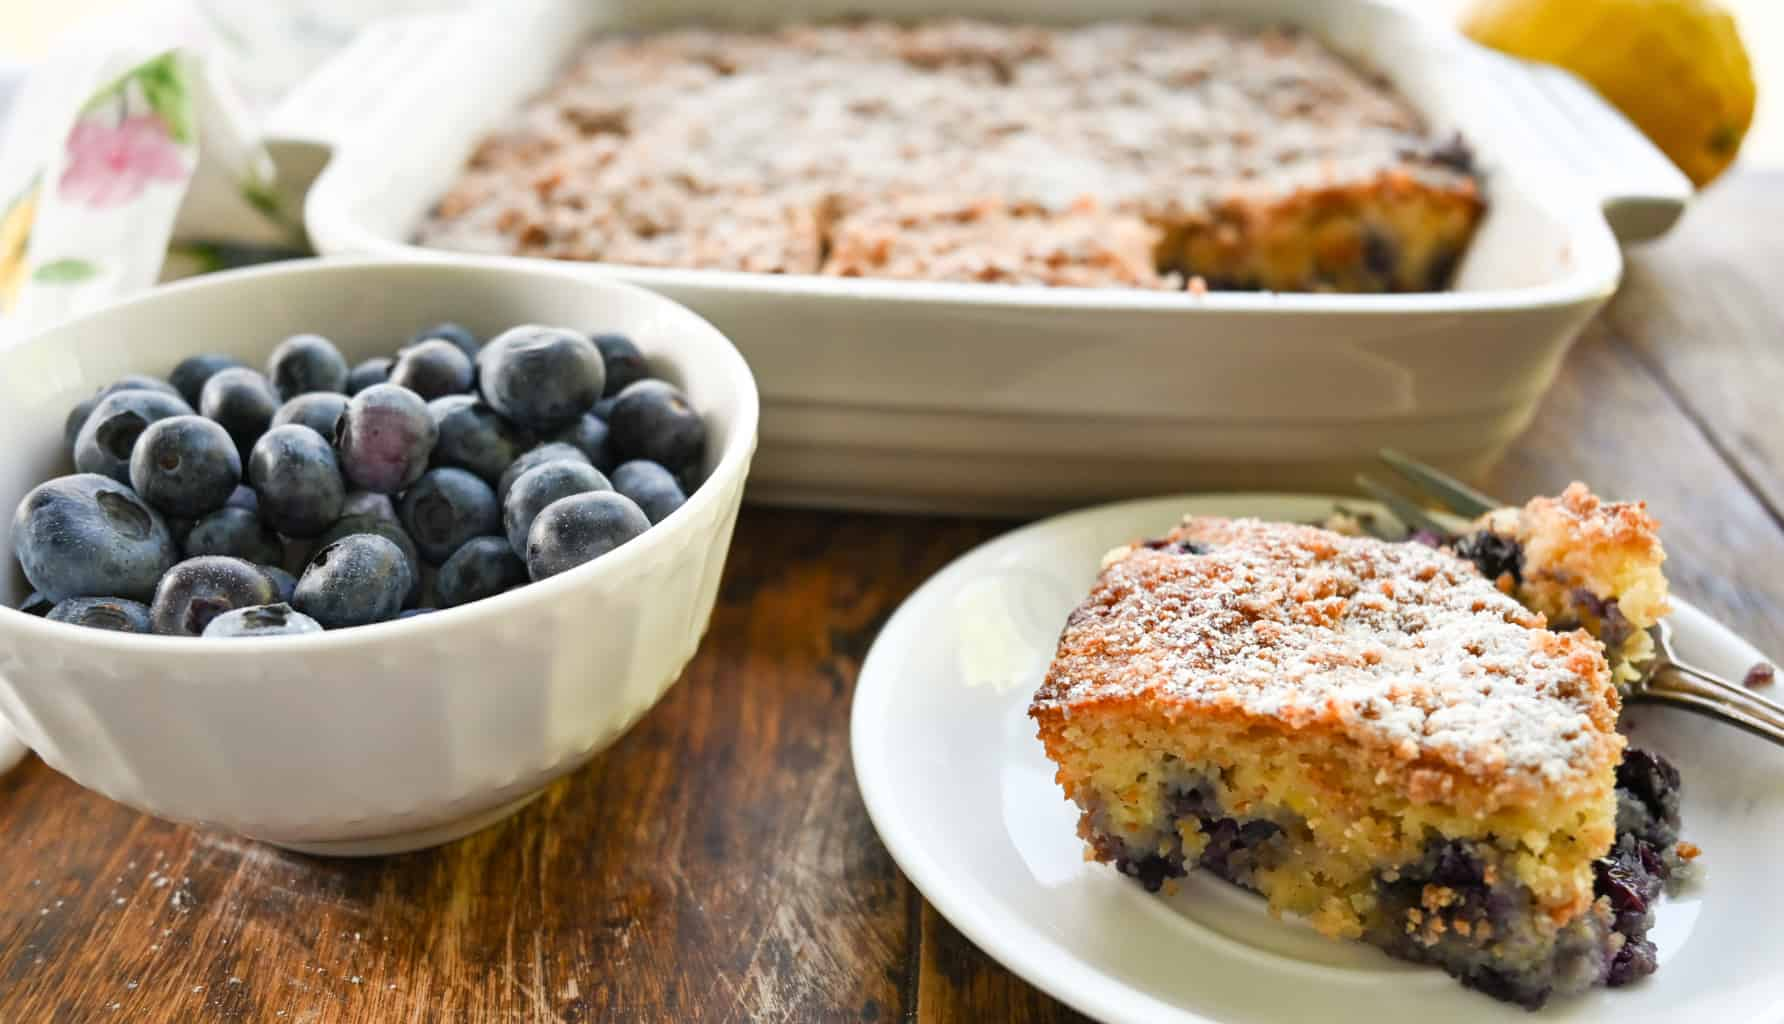 keto blueberry buckle cake with a side of blueberries in a small bowl